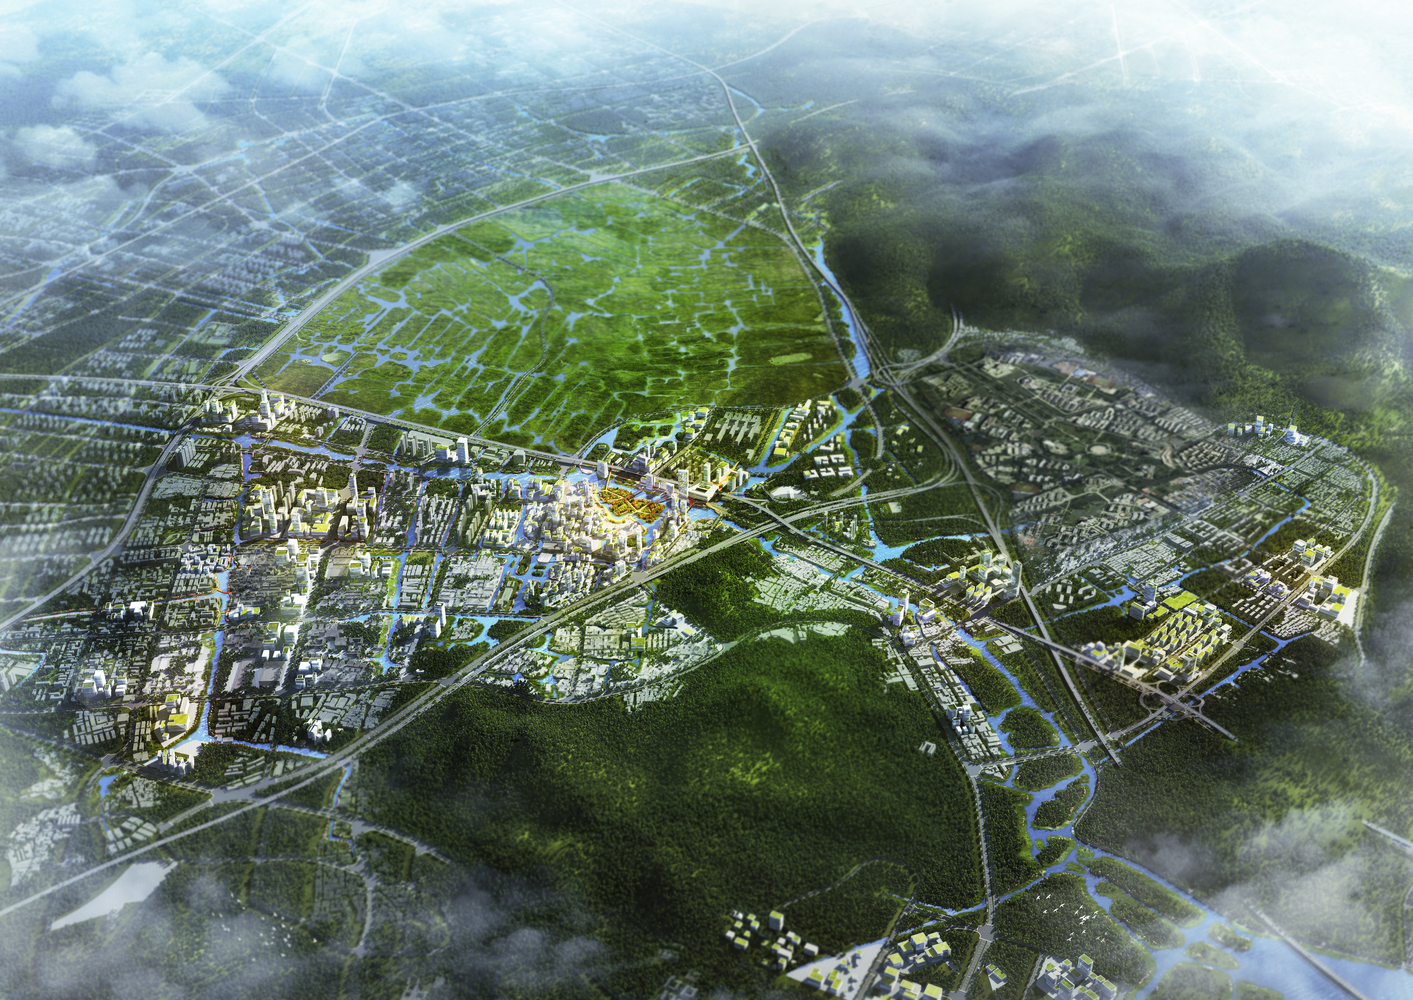 """Future Cities: From Le Corbusier's Radiant City to the Dutch """"Breathing City 2050"""" ,Ouhai district Wenzhou / VenhoevenCS. Image Courtesy of VenhoevenCS"""